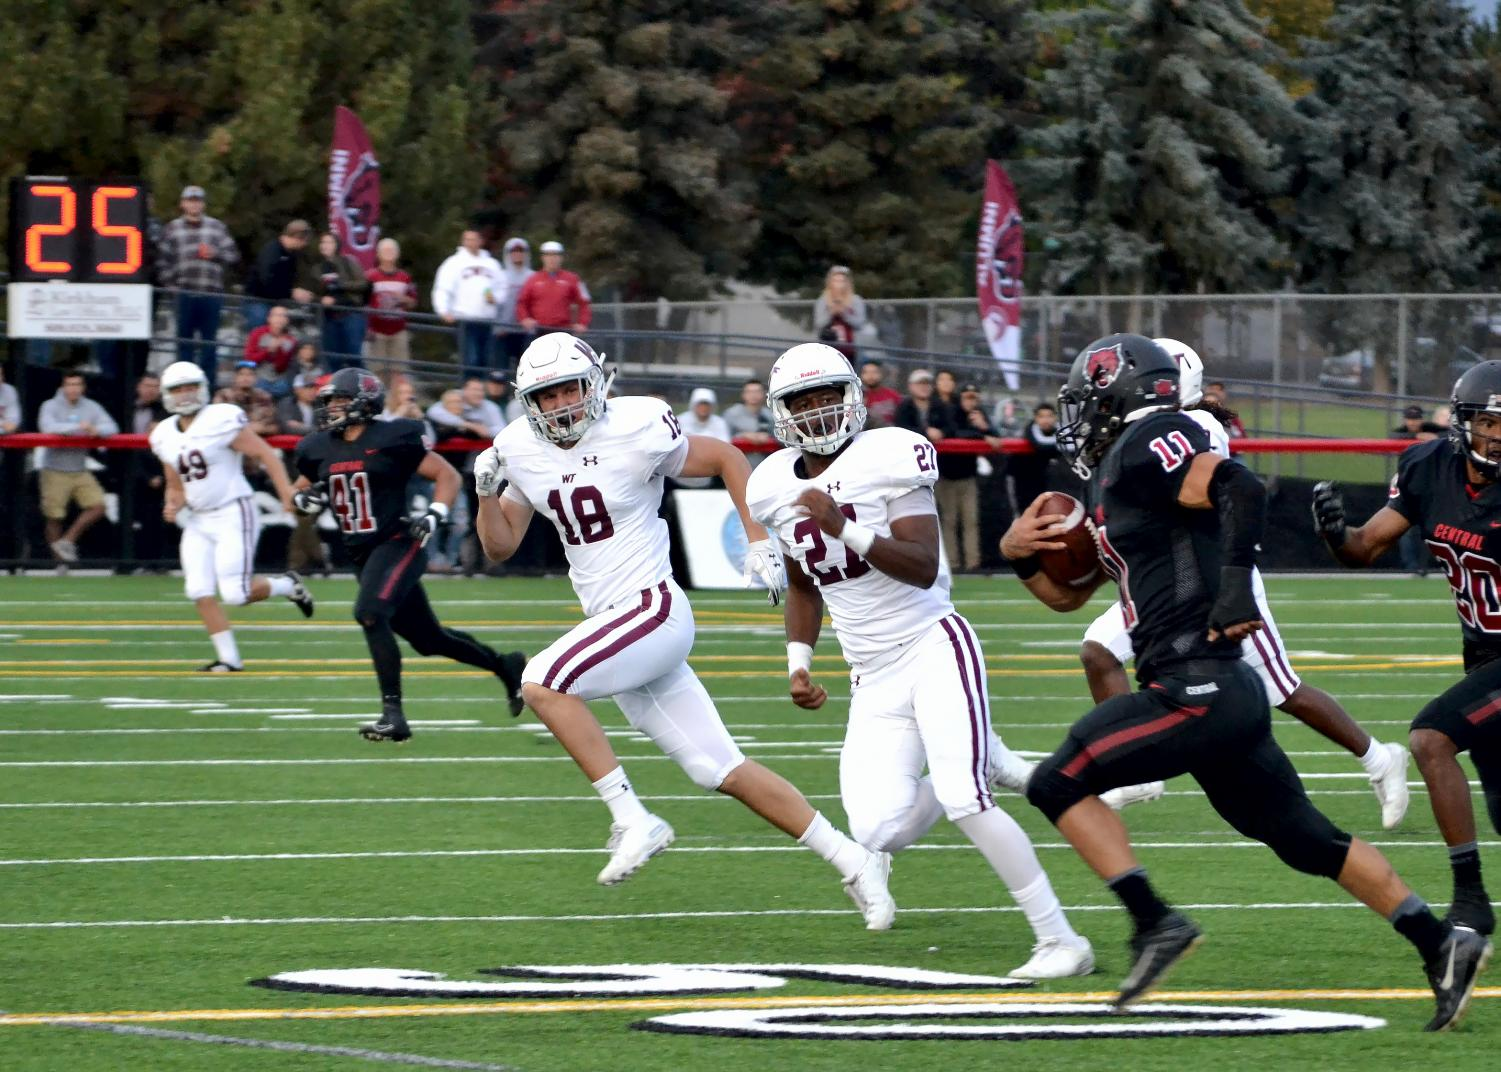 CWU welcomed West Texas A&M University for the grand reopening of Tomlinson Stadium. The Buffalos defeated the Wildcats 28-26, CWU's second loss of the season.